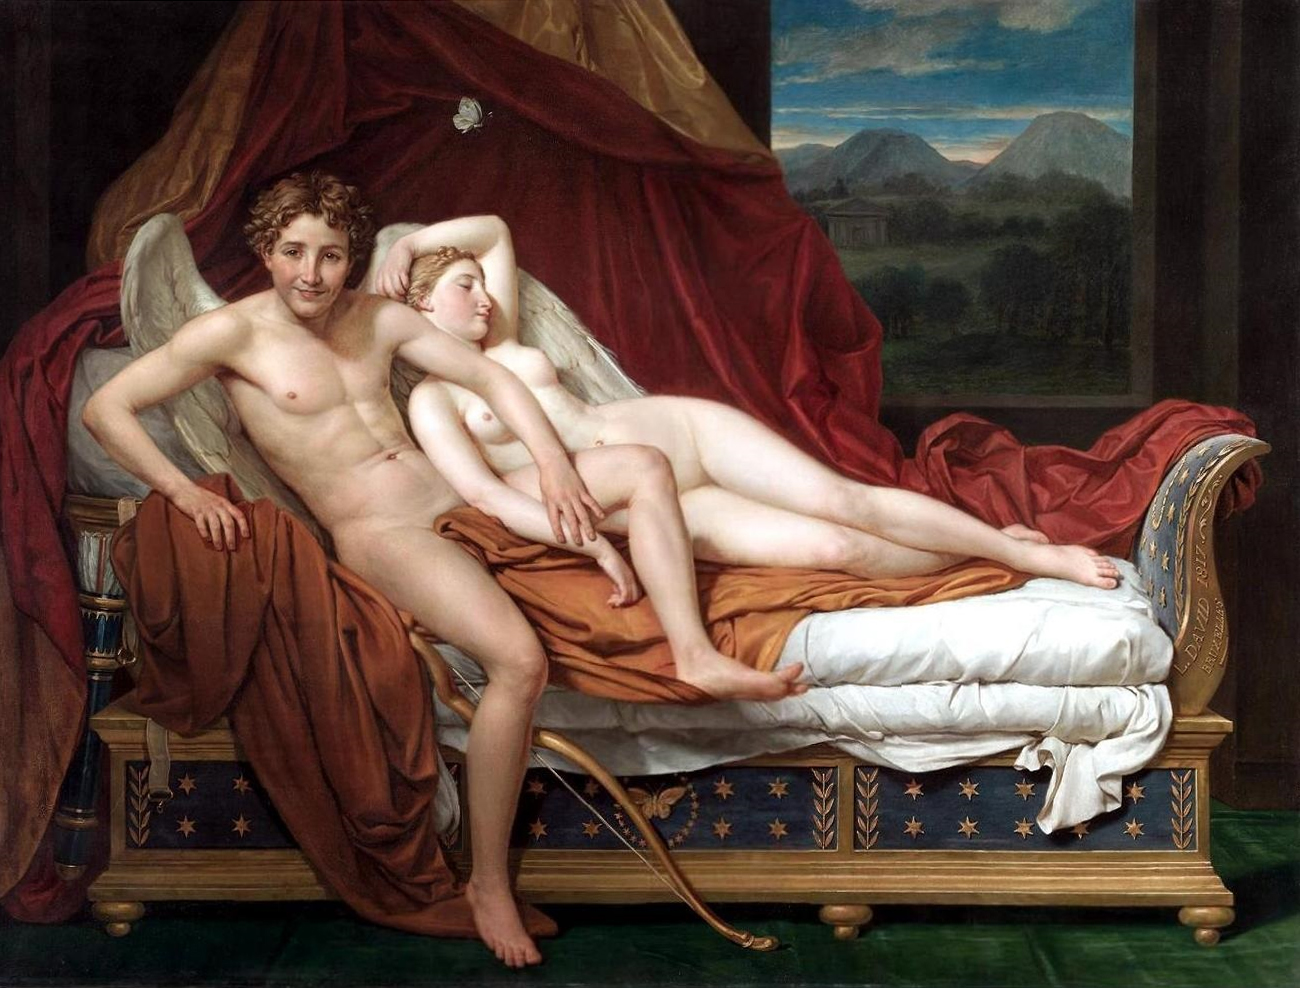 https://i1.wp.com/upload.wikimedia.org/wikipedia/commons/f/f9/Cupid_and_psyche.jpg